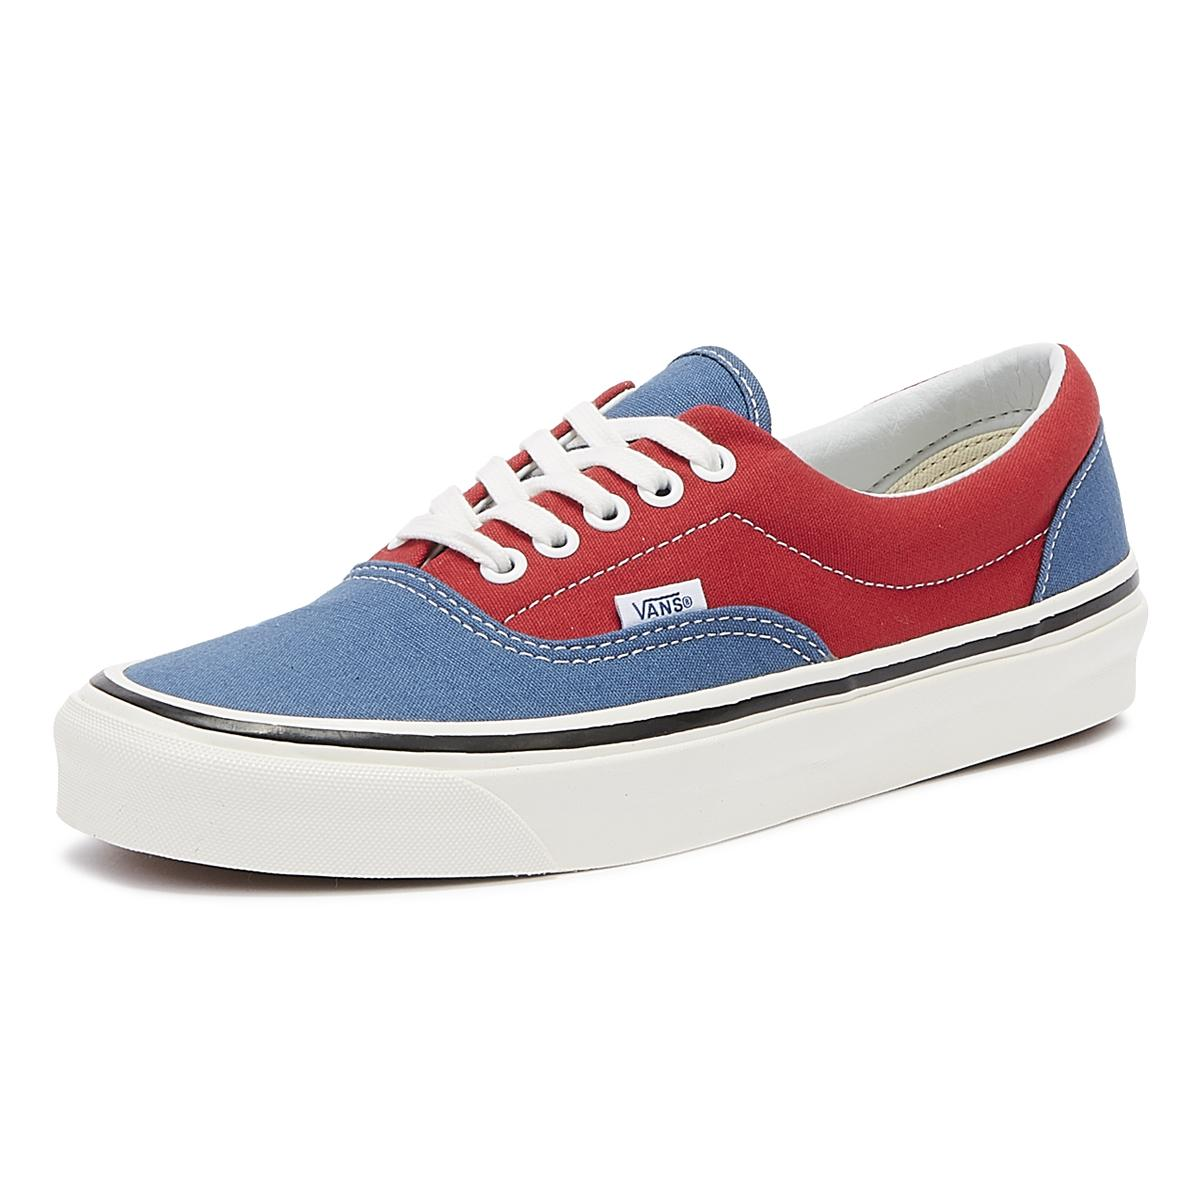 15d2c68d41a96 Lyst - Vans Anaheim Factory Era 95 Dx Mens Navy / Red Trainers in ...